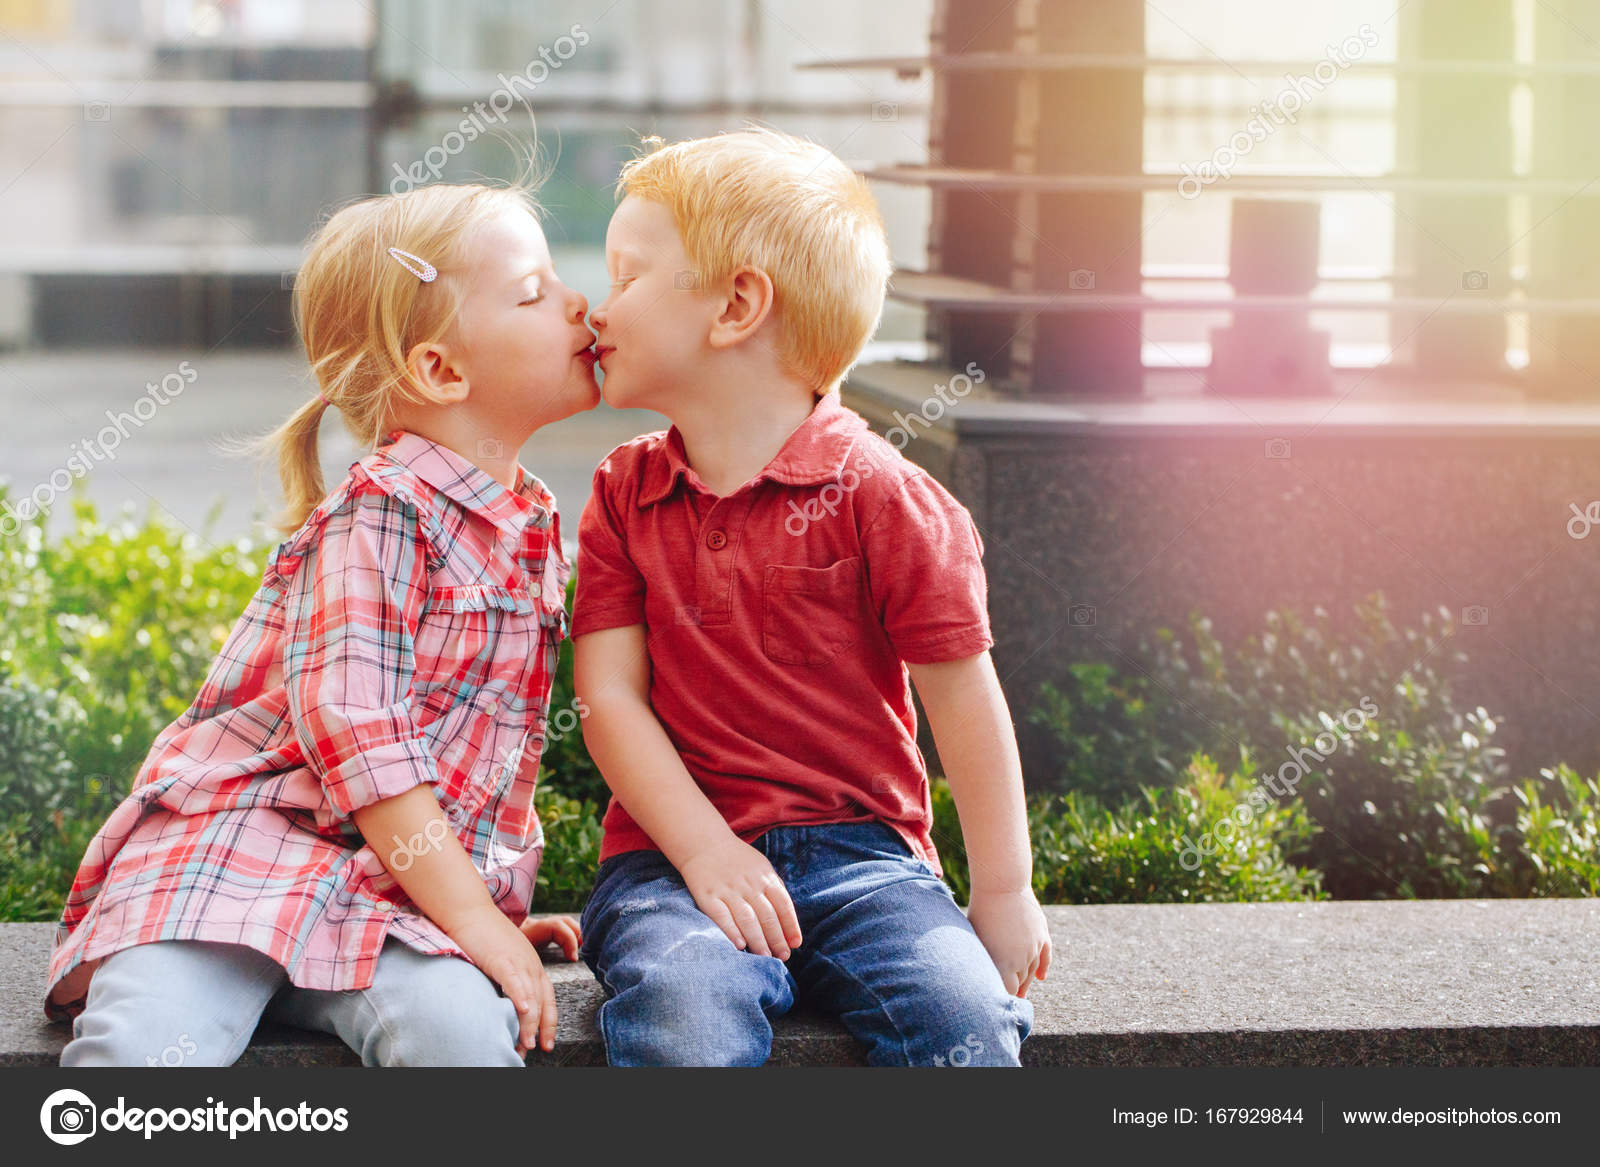 a boy and girl kissing each other